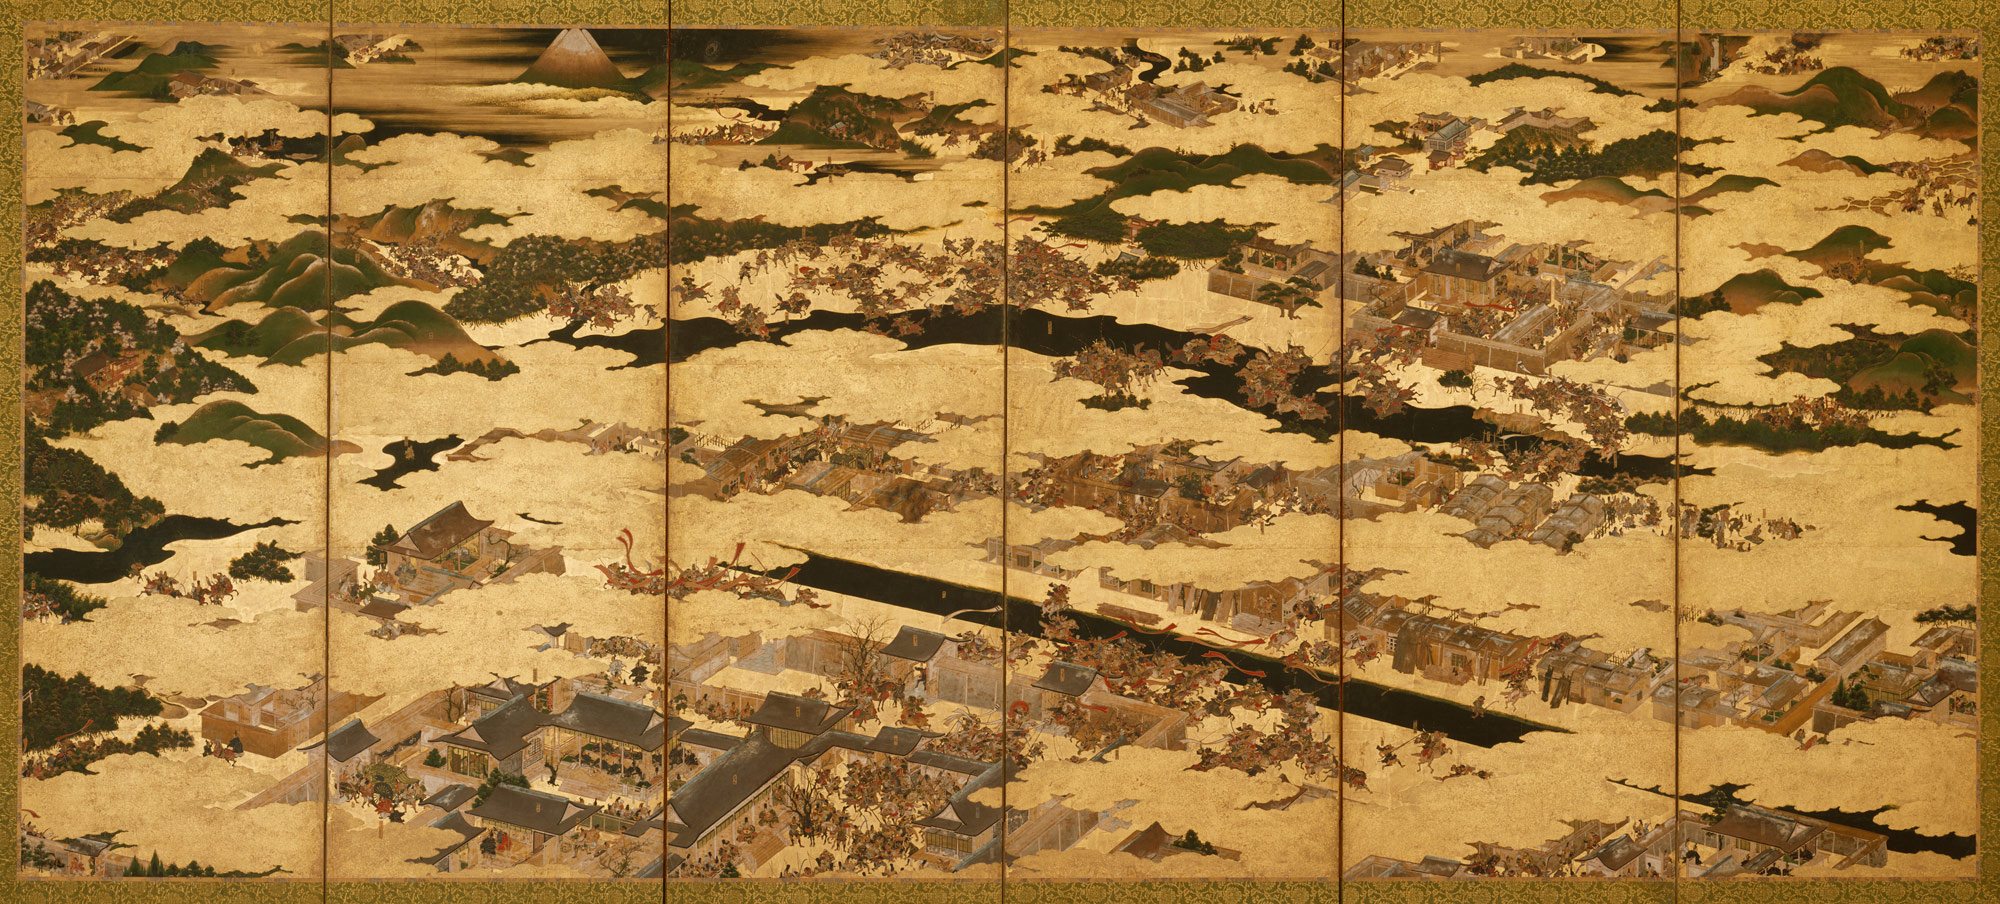 The Rebellions of the Hōgen and Heiji Eras